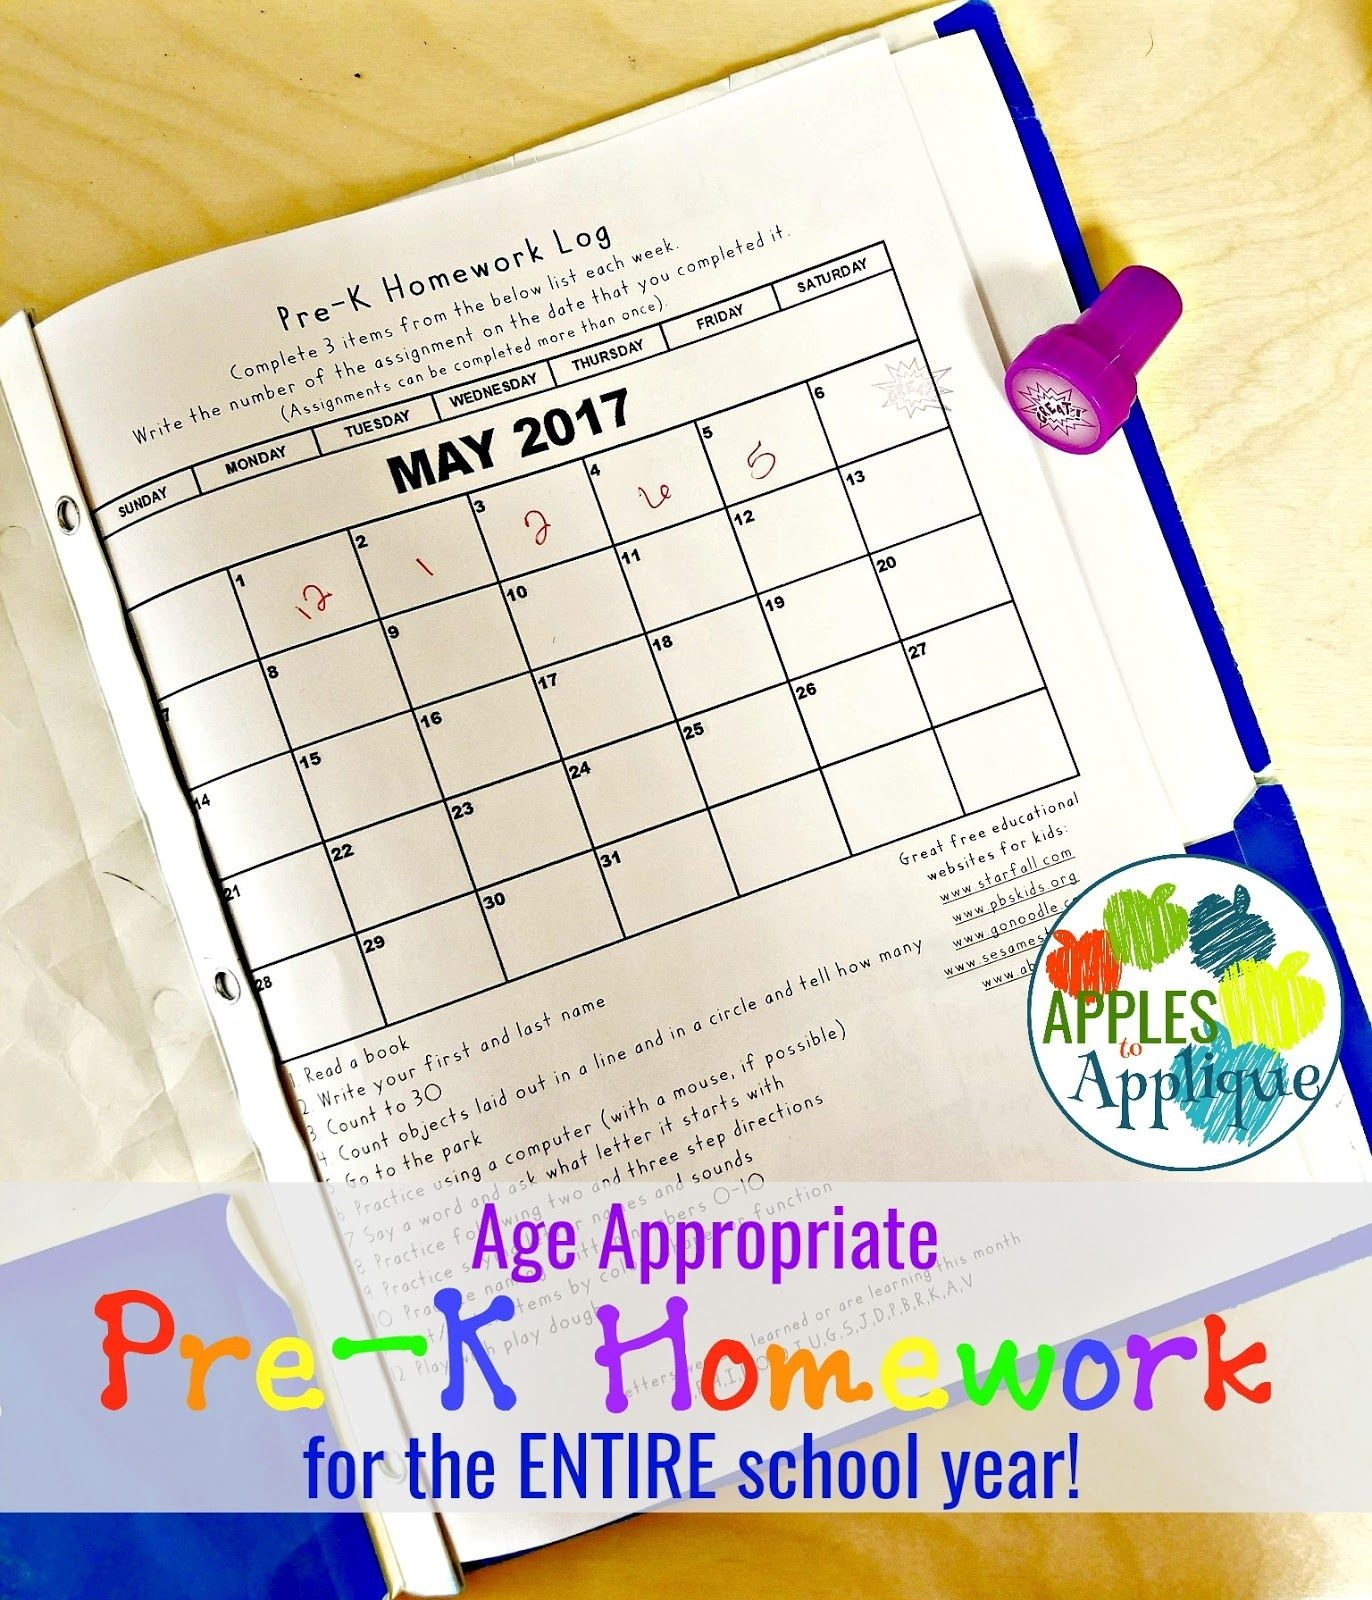 Apples To Applique: Age Appropriate Pre K Homework